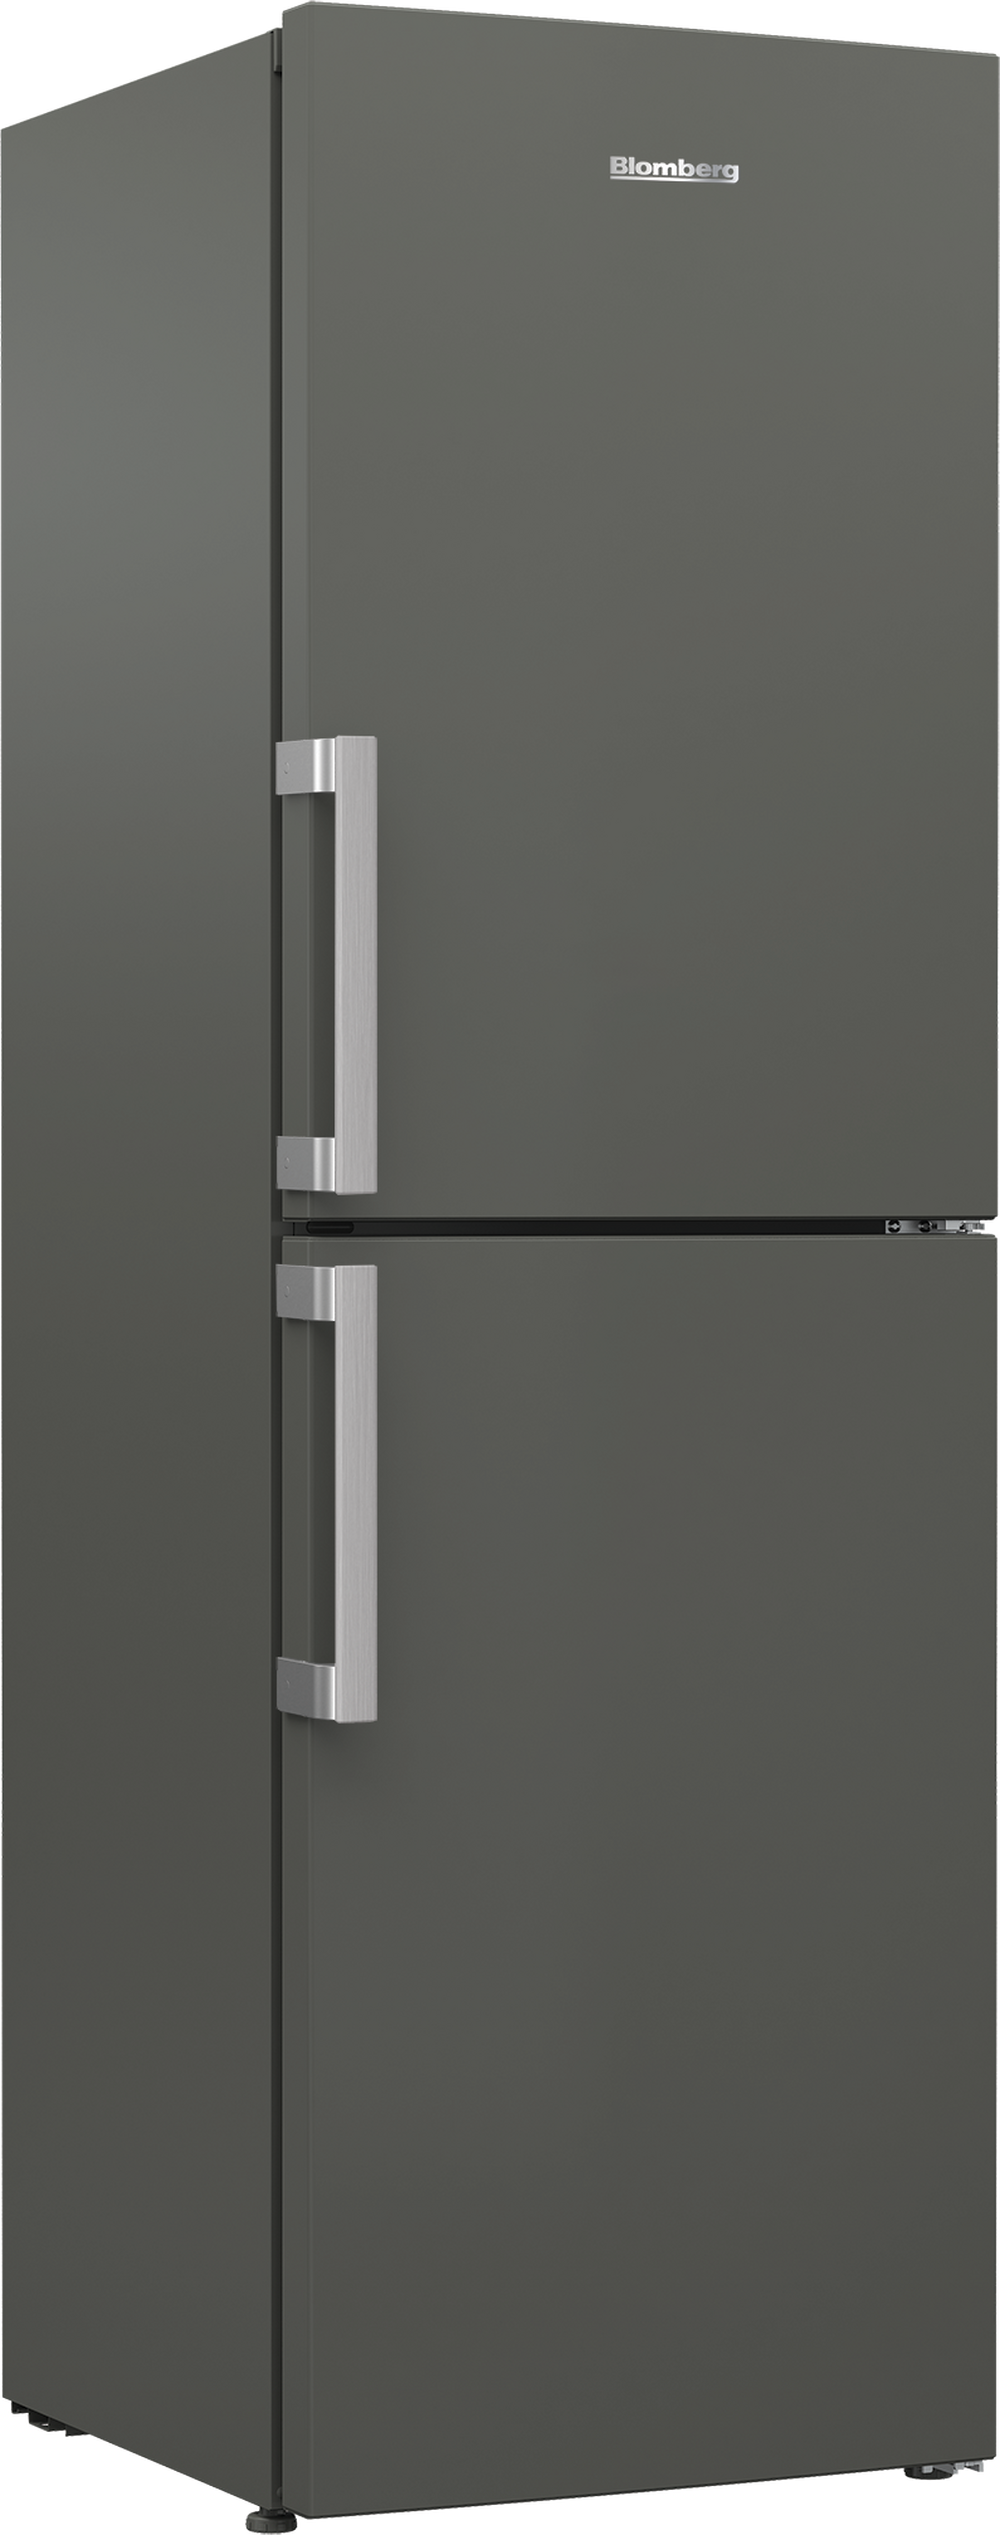 Blomberg Fridge Freezer in Graphite